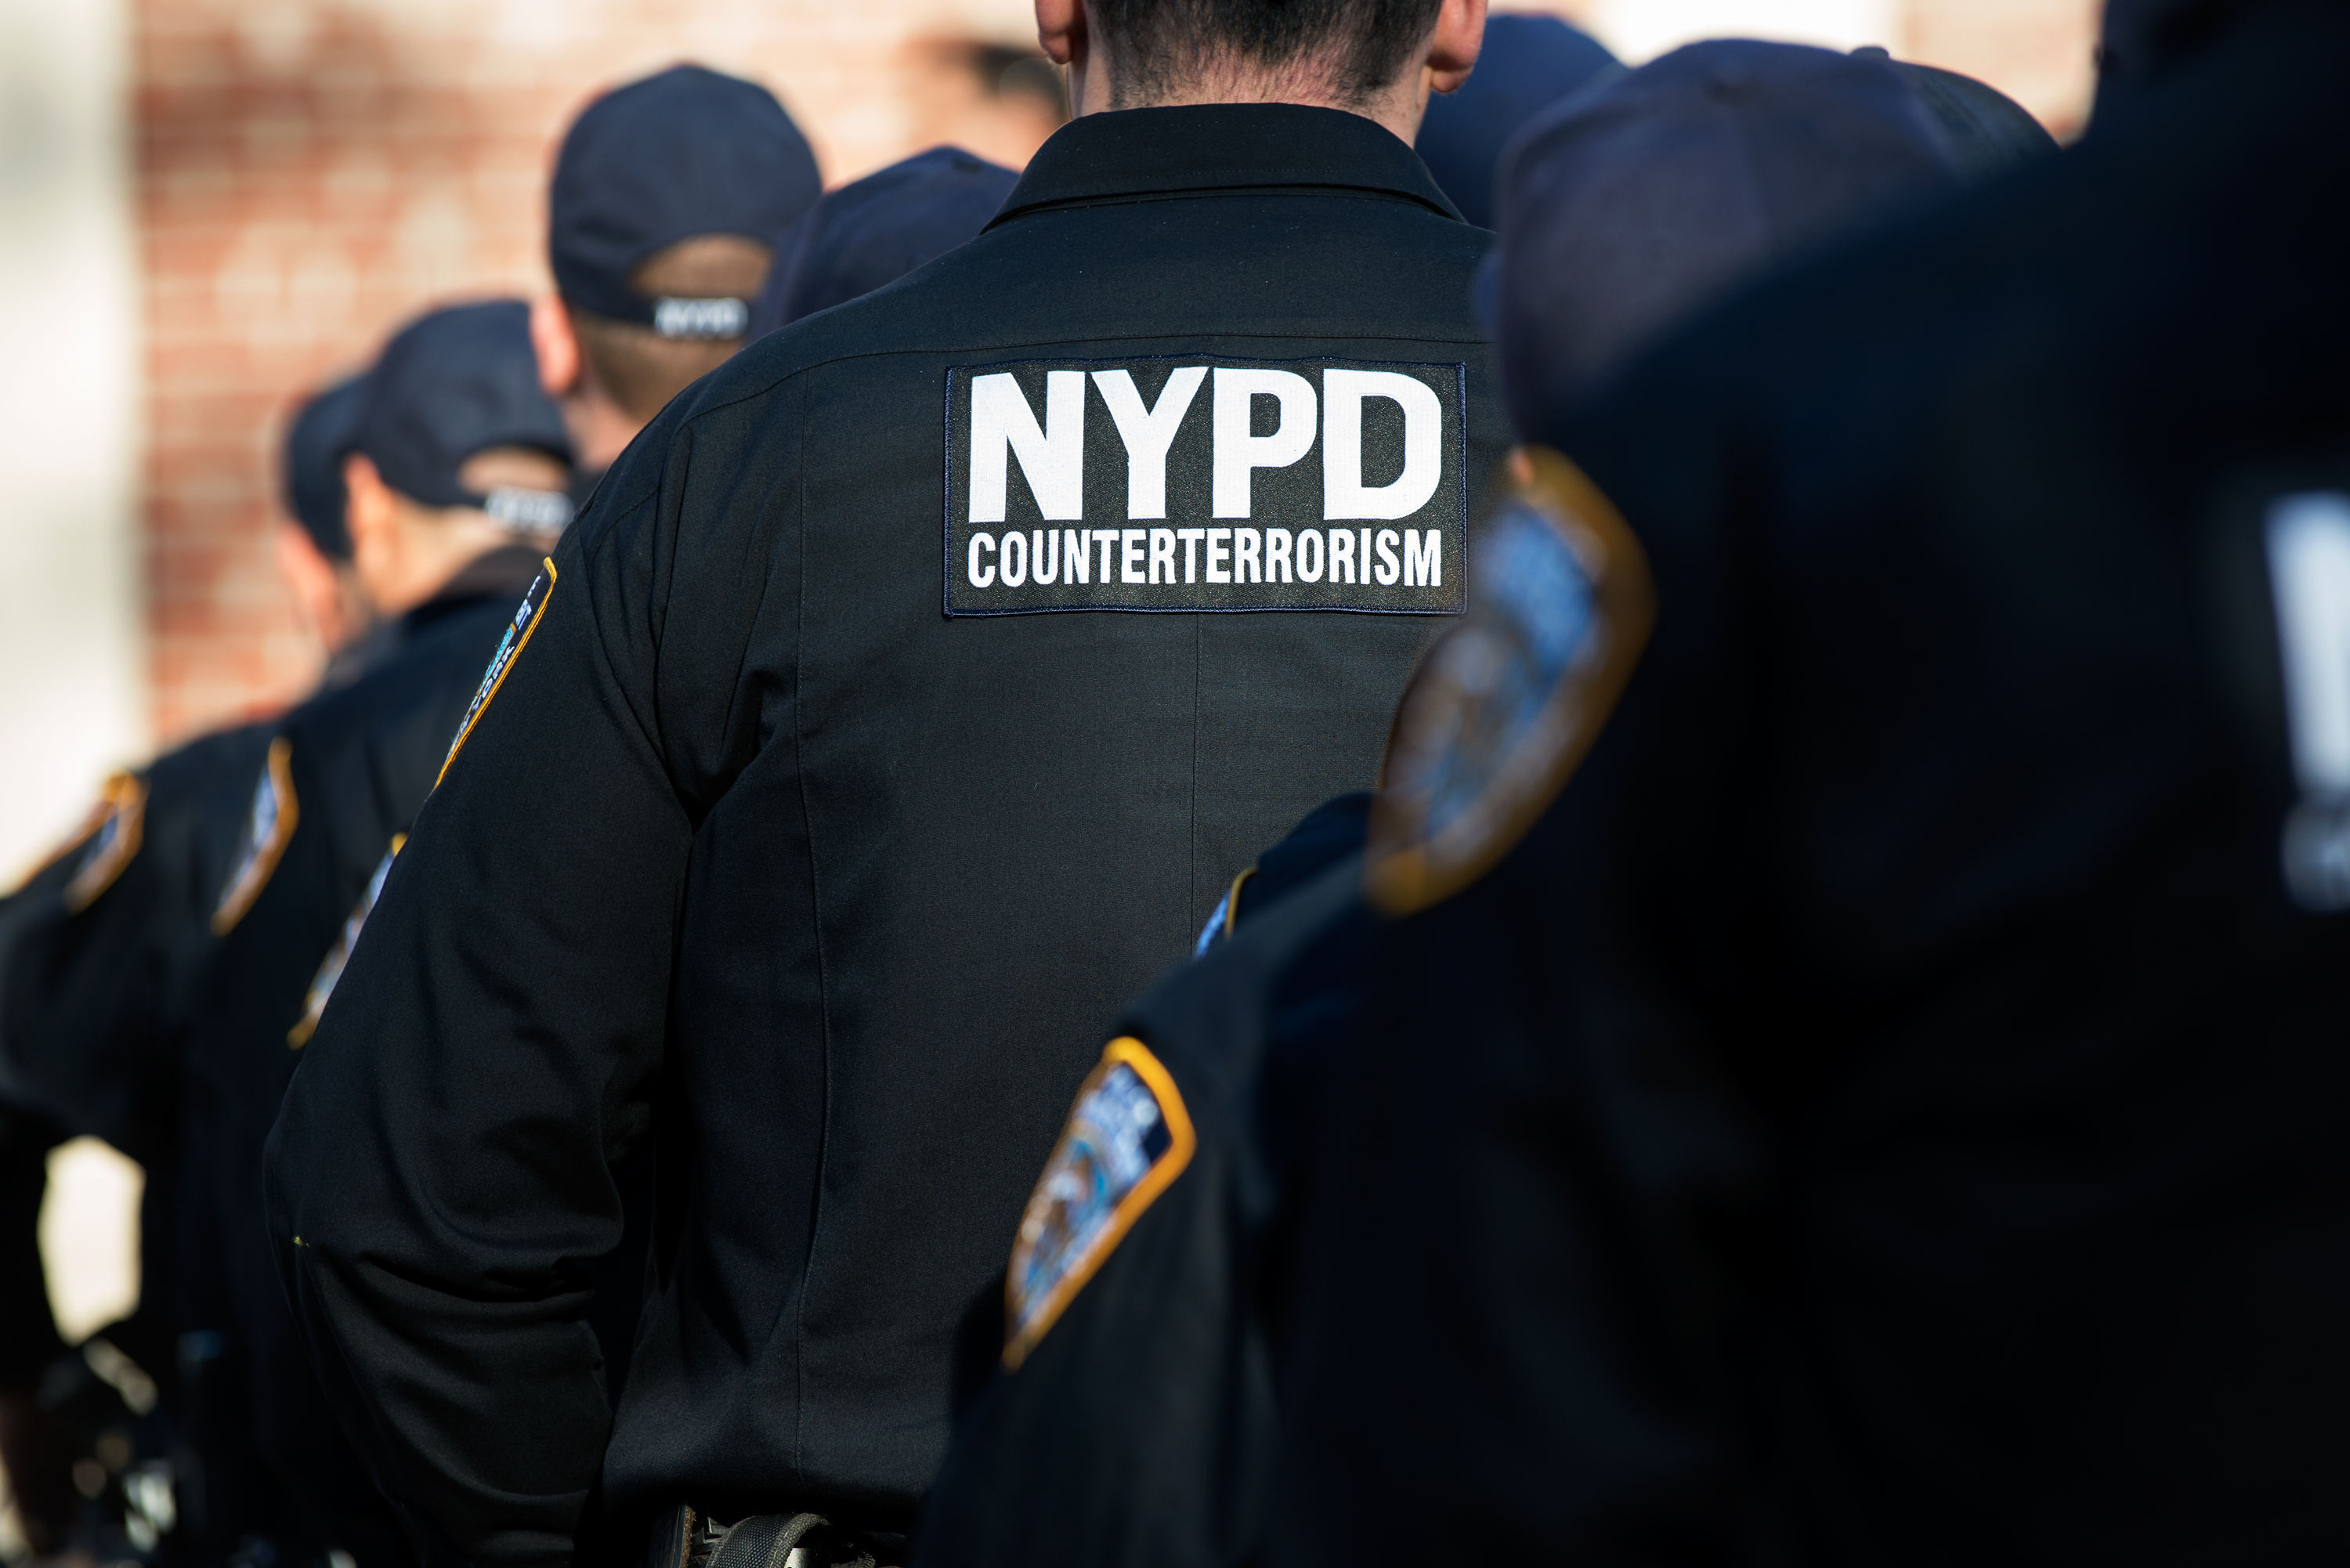 NYPD officers await the announcement of the formation of the Critical Command of the Counter-Terrorism Bureau in New York City on Nov. 16, 2015.